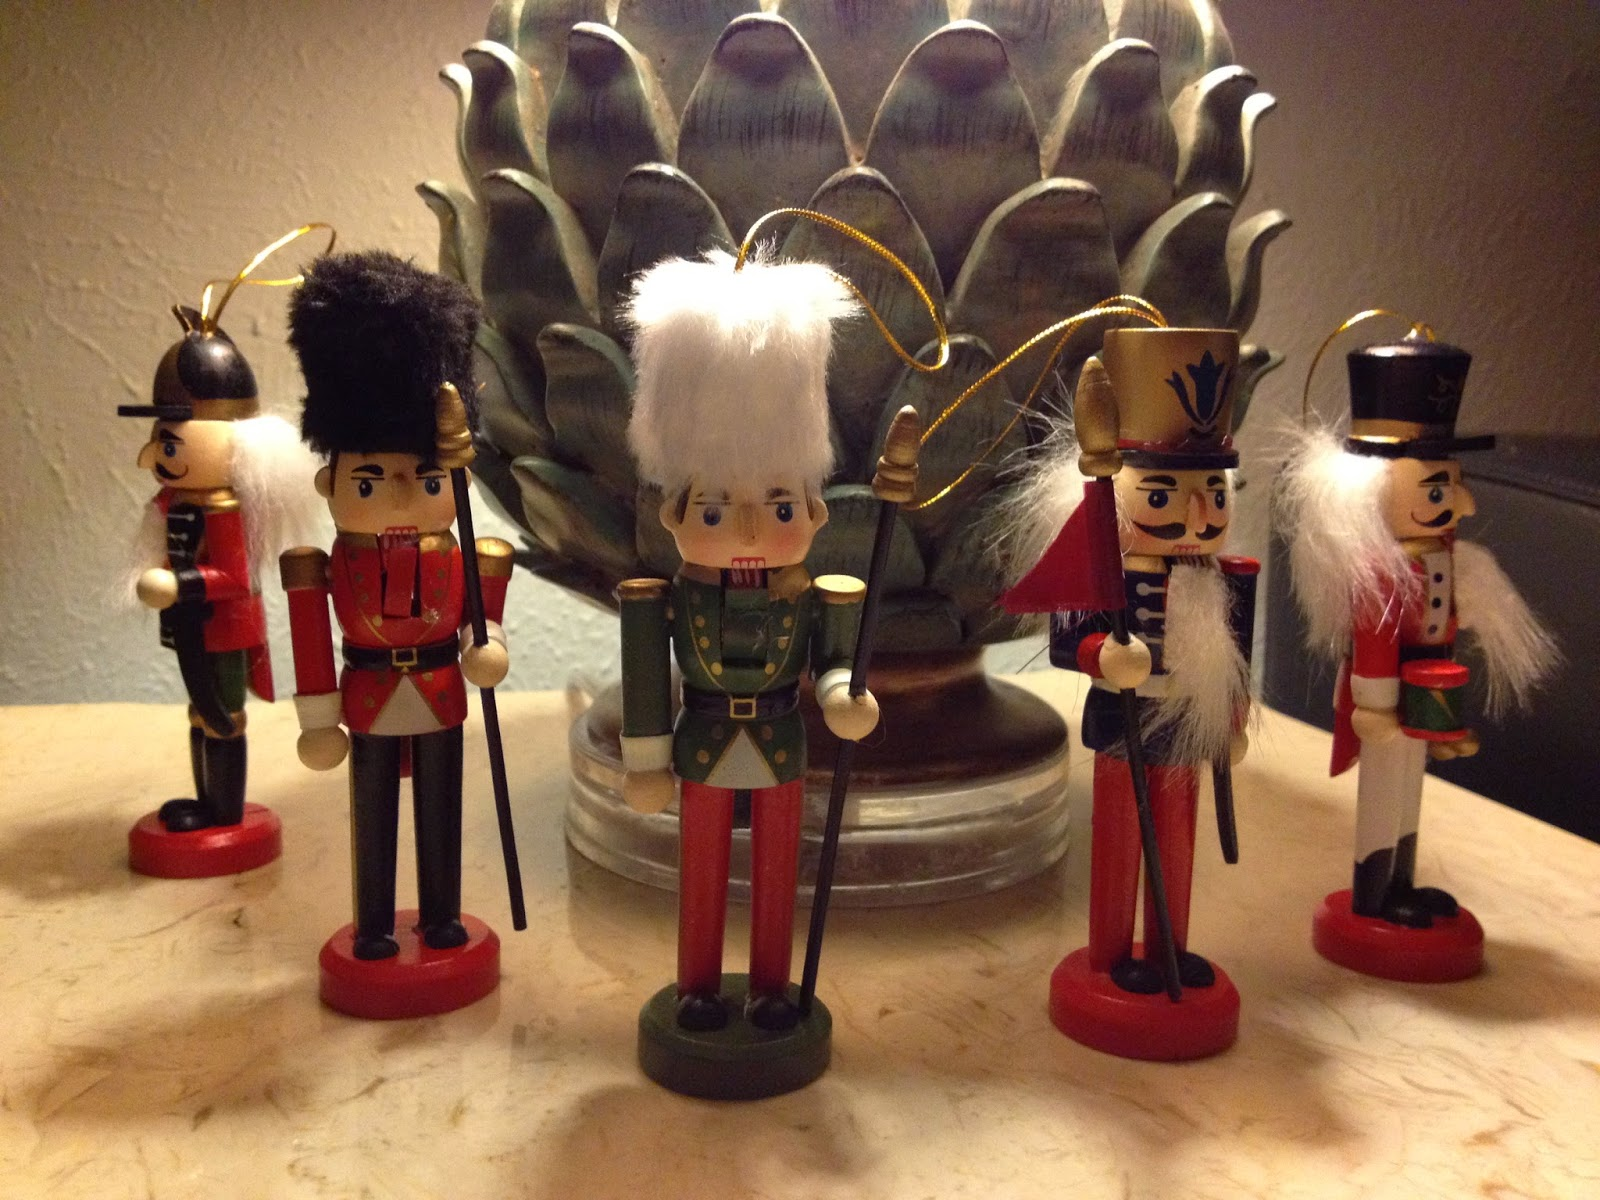 squad of miniature nutcrackers guarding a giant pineapple